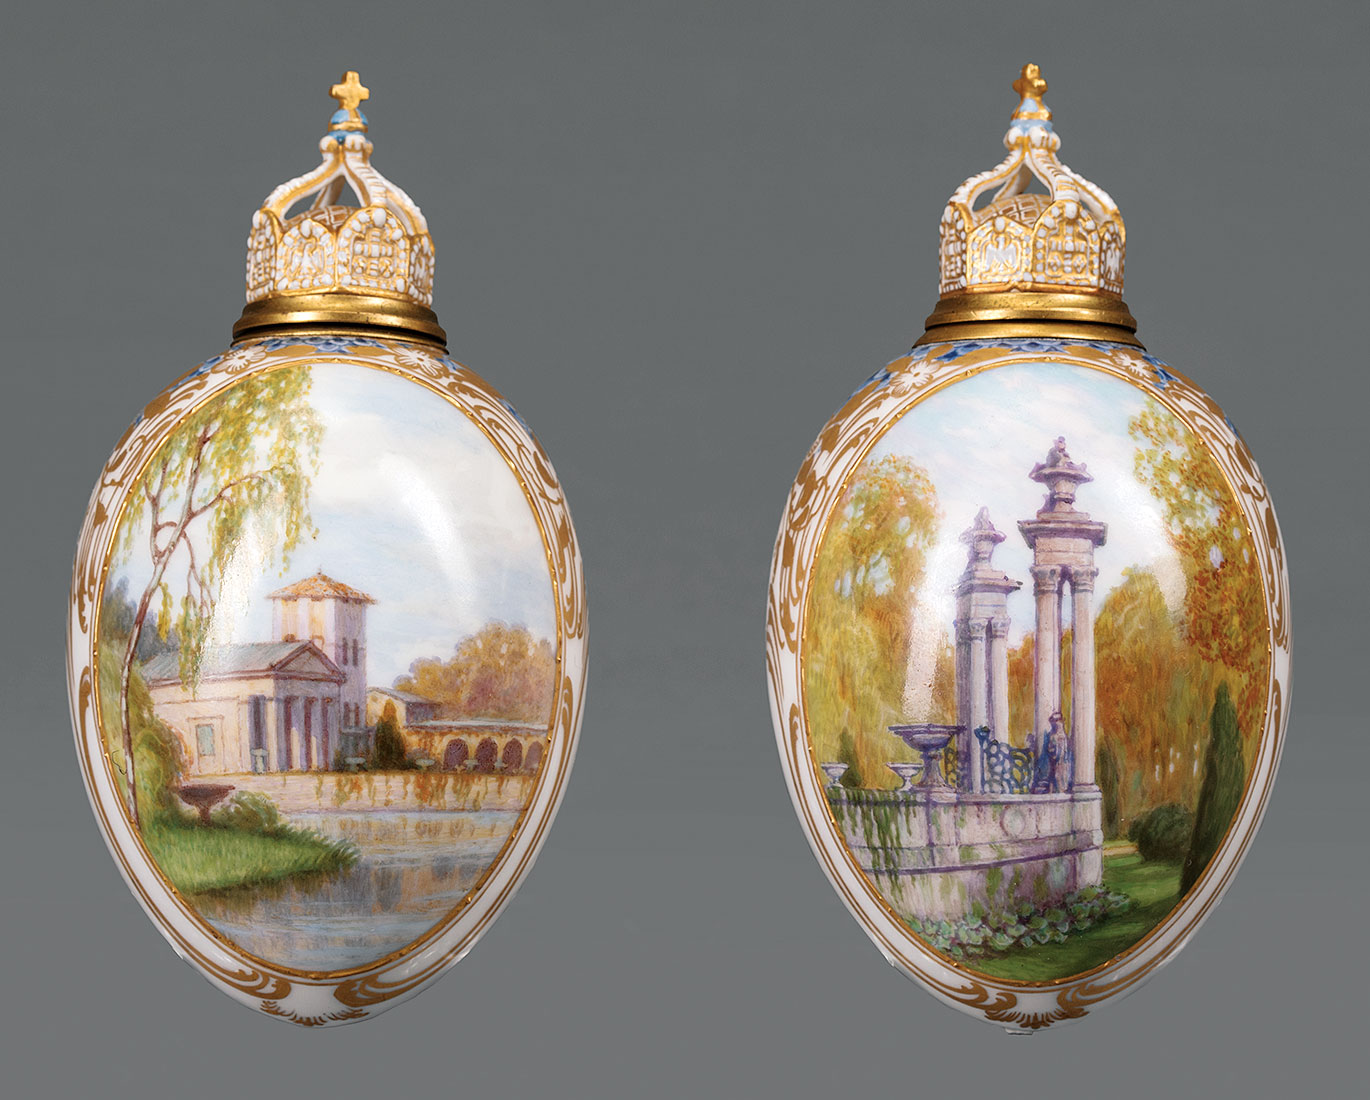 Lot 484 - Pair of Continental Polychrome and Gilt Porcelain Egg-Form Vessels with Stoppers , 19th c., possibly